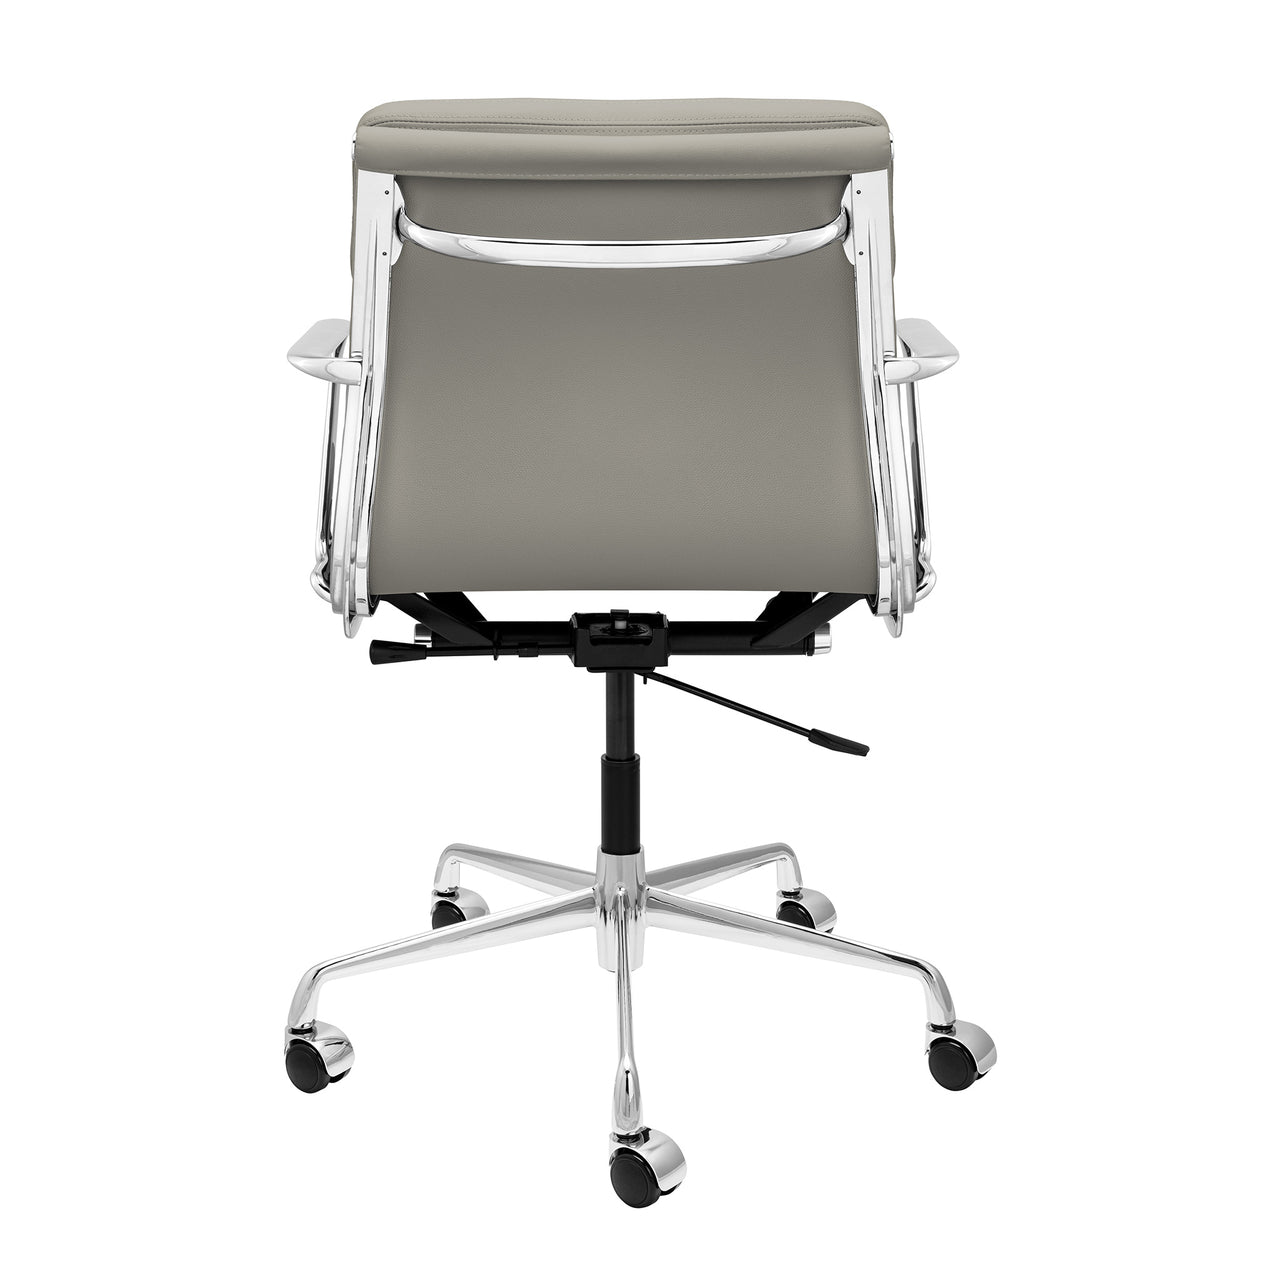 SOHO Pro Soft Pad Management Chair (Grey Italian Leather)